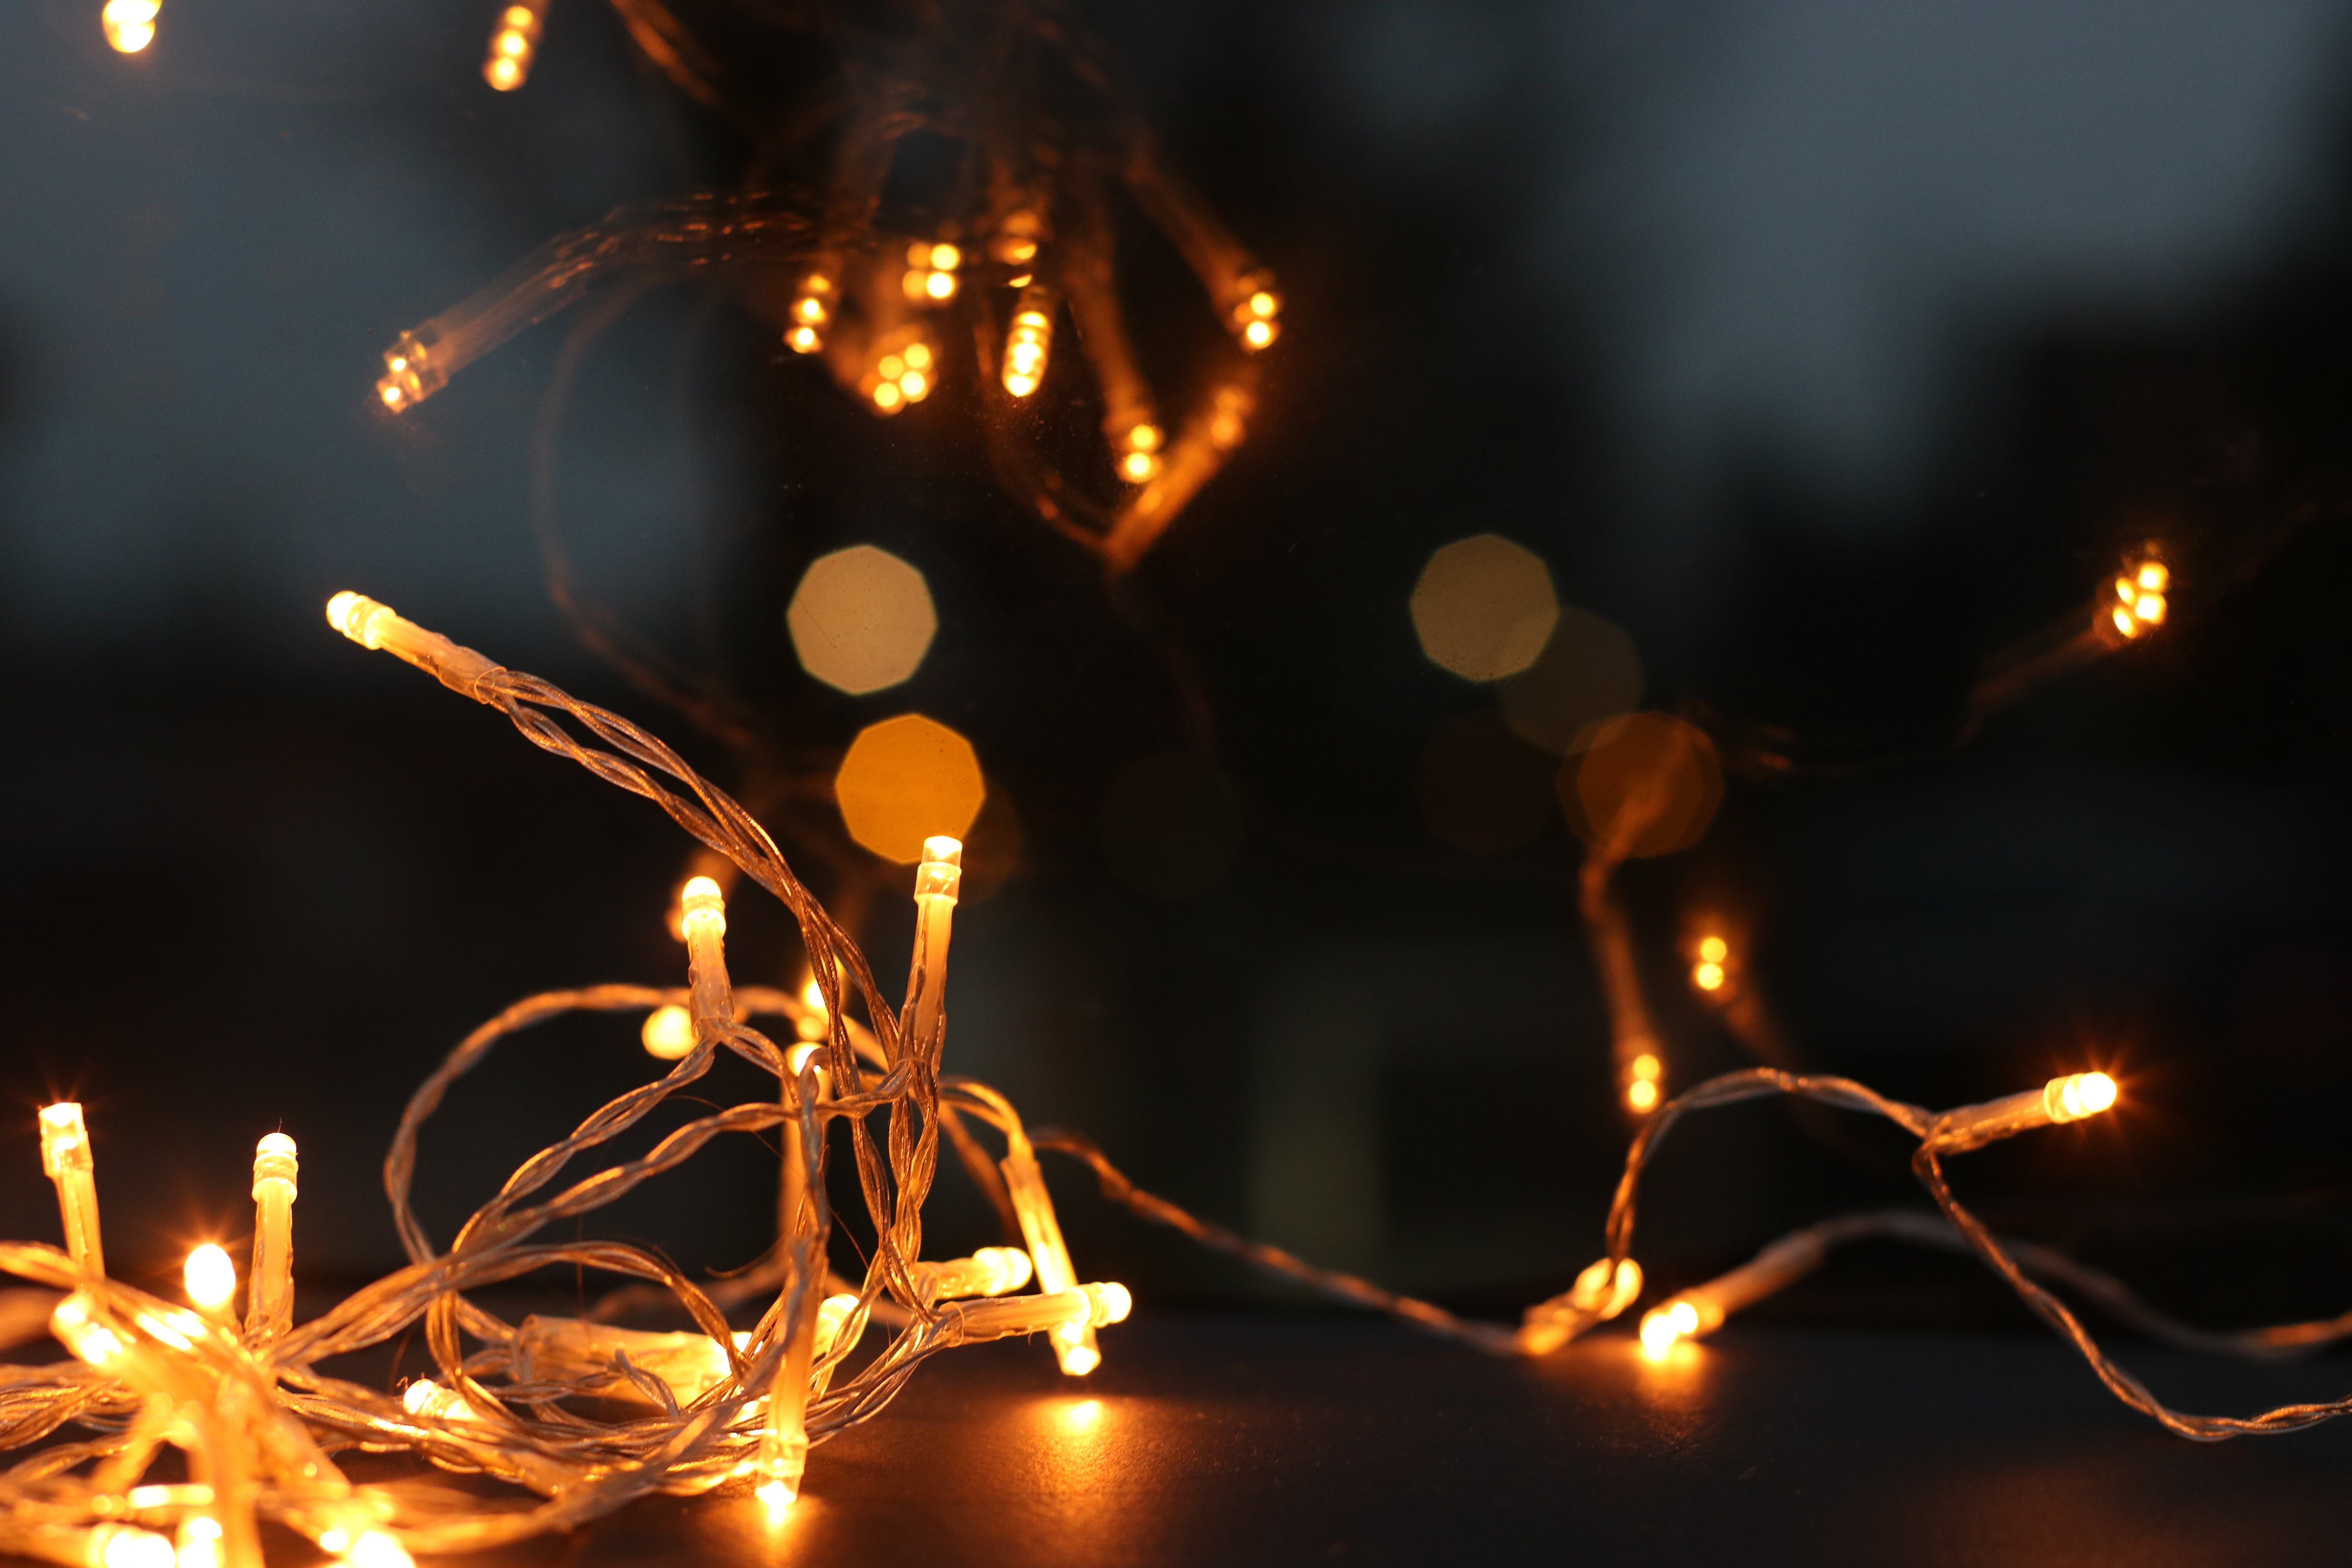 Shallow Focus Photography of String Lights